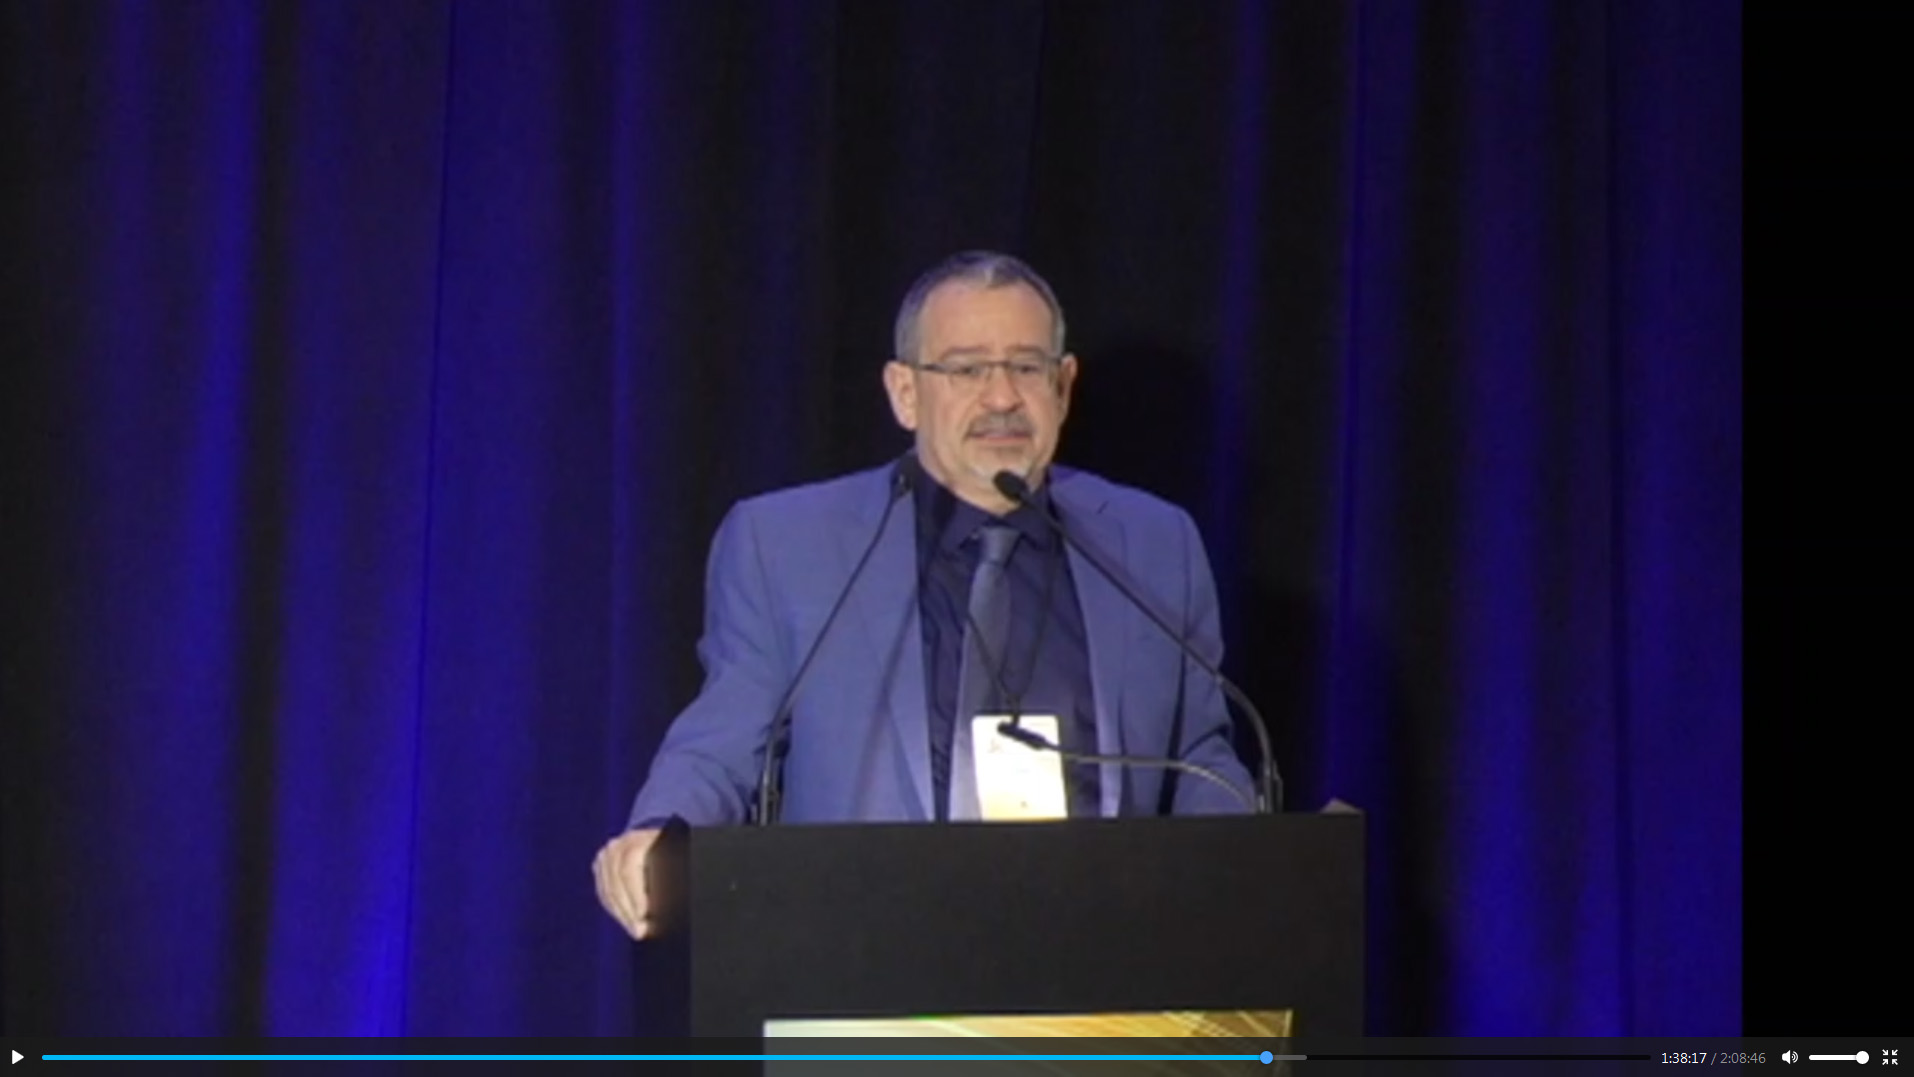 Yannis Tsitos Presenting at the Precious Metals Summit, Beaver Creek, CO Sept 2019